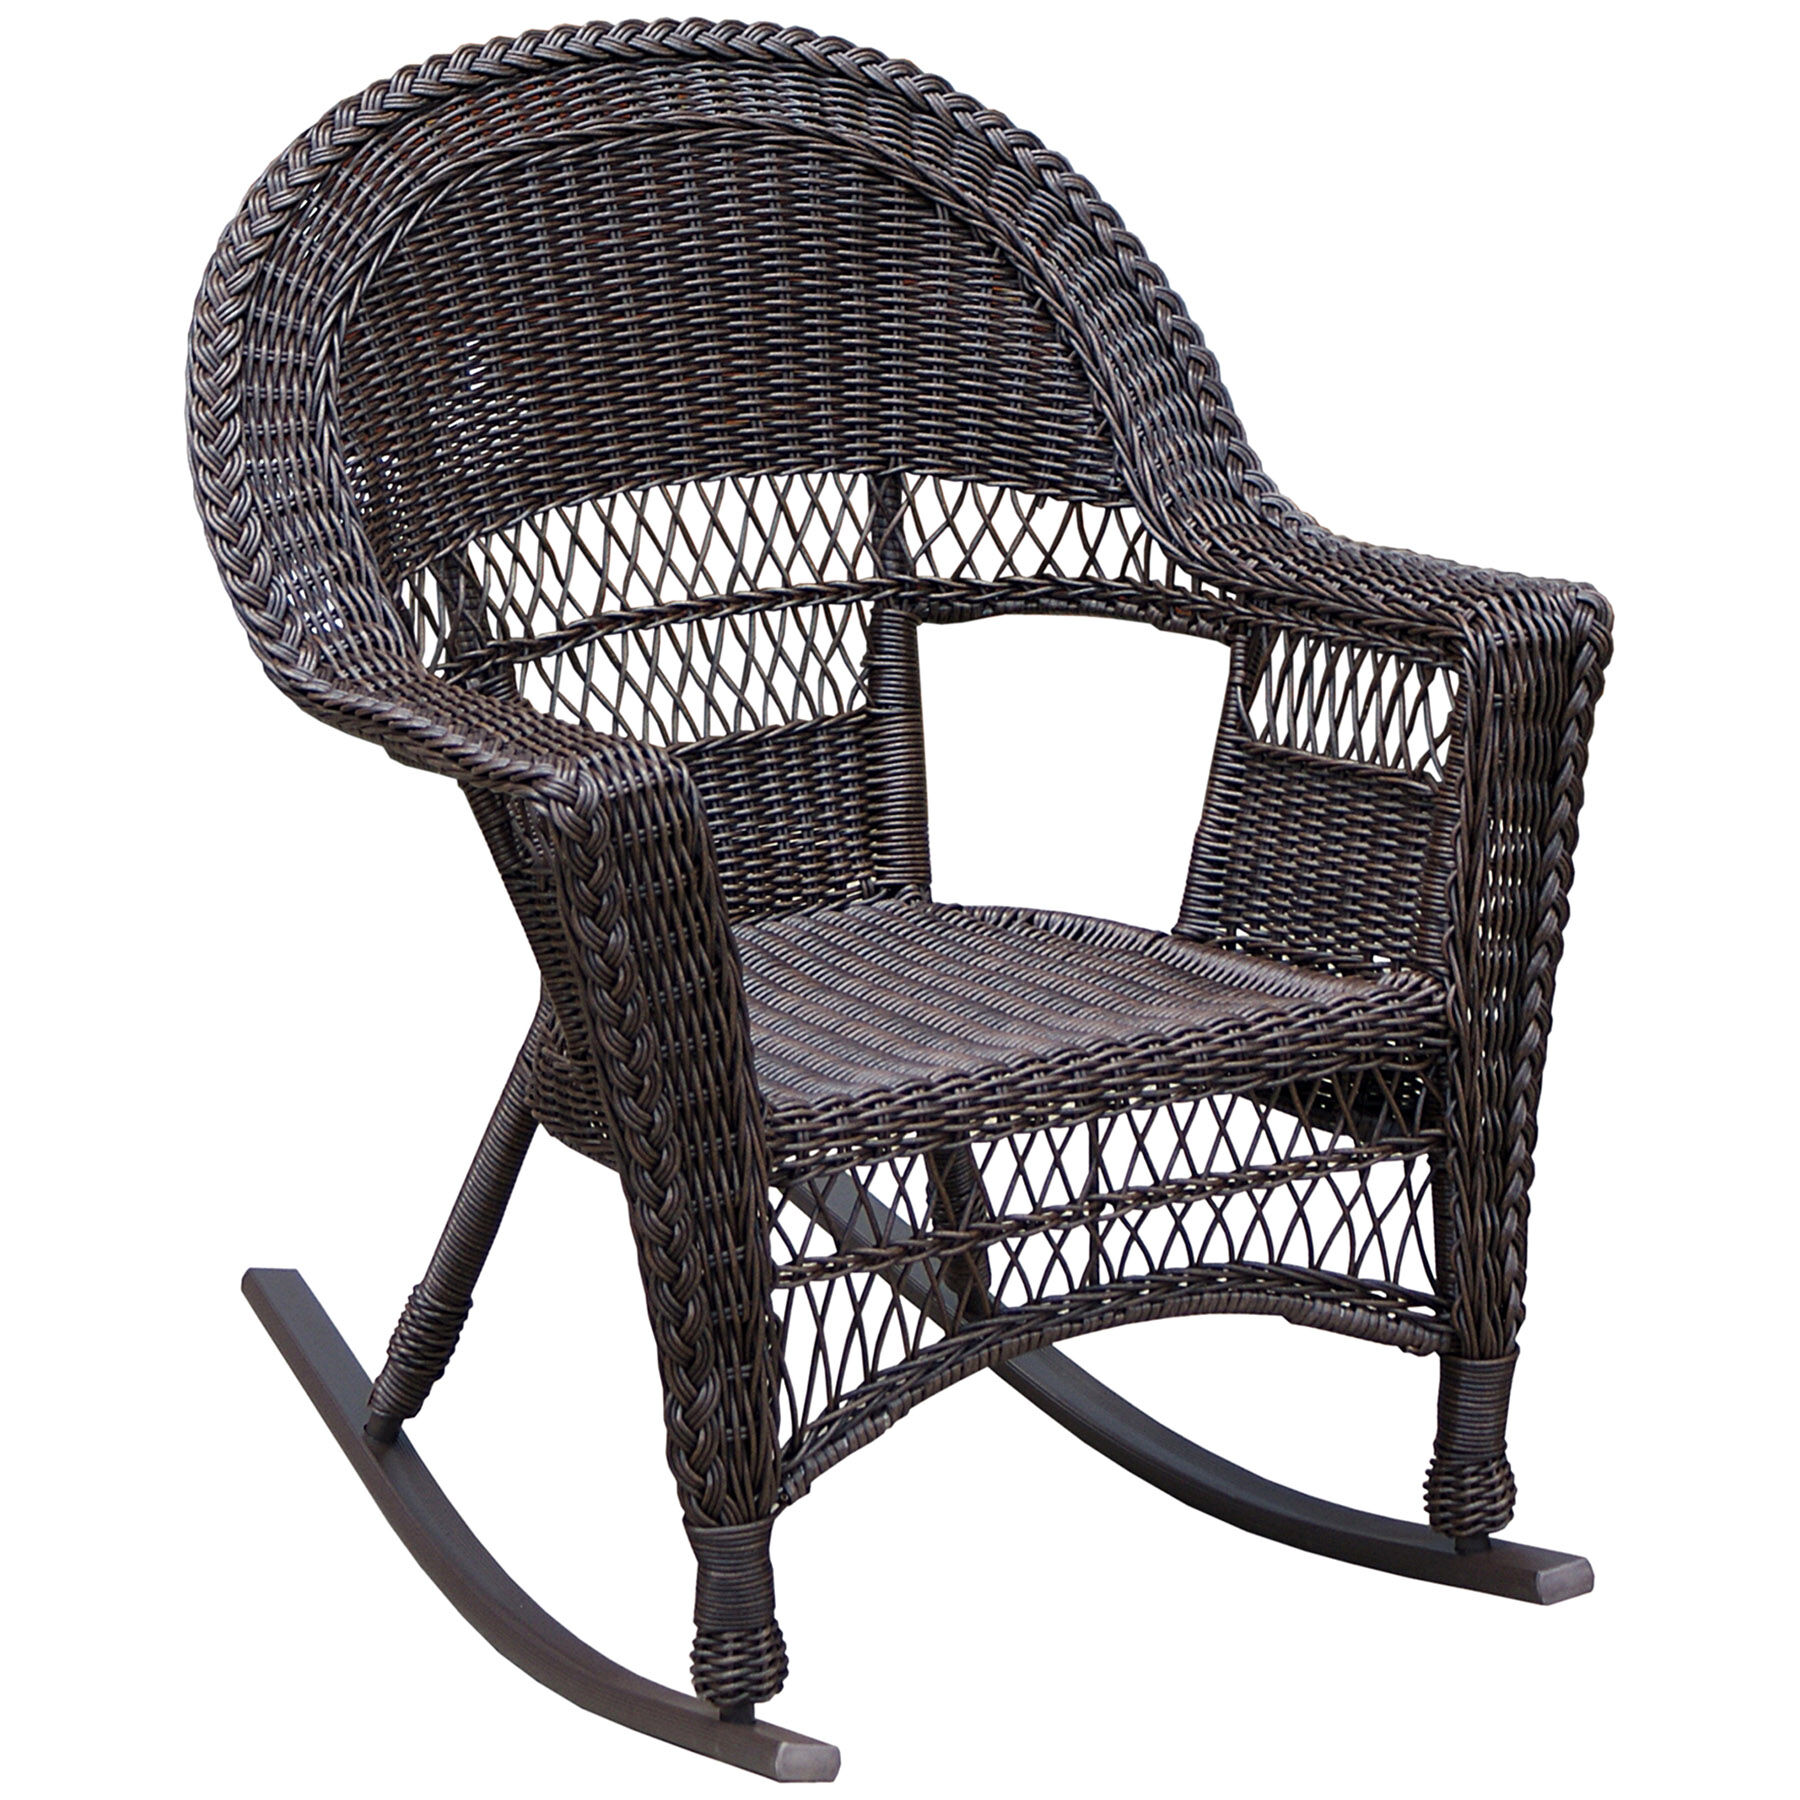 wicker rocking chairs physio ball chair base dark brown rocker at home zoom